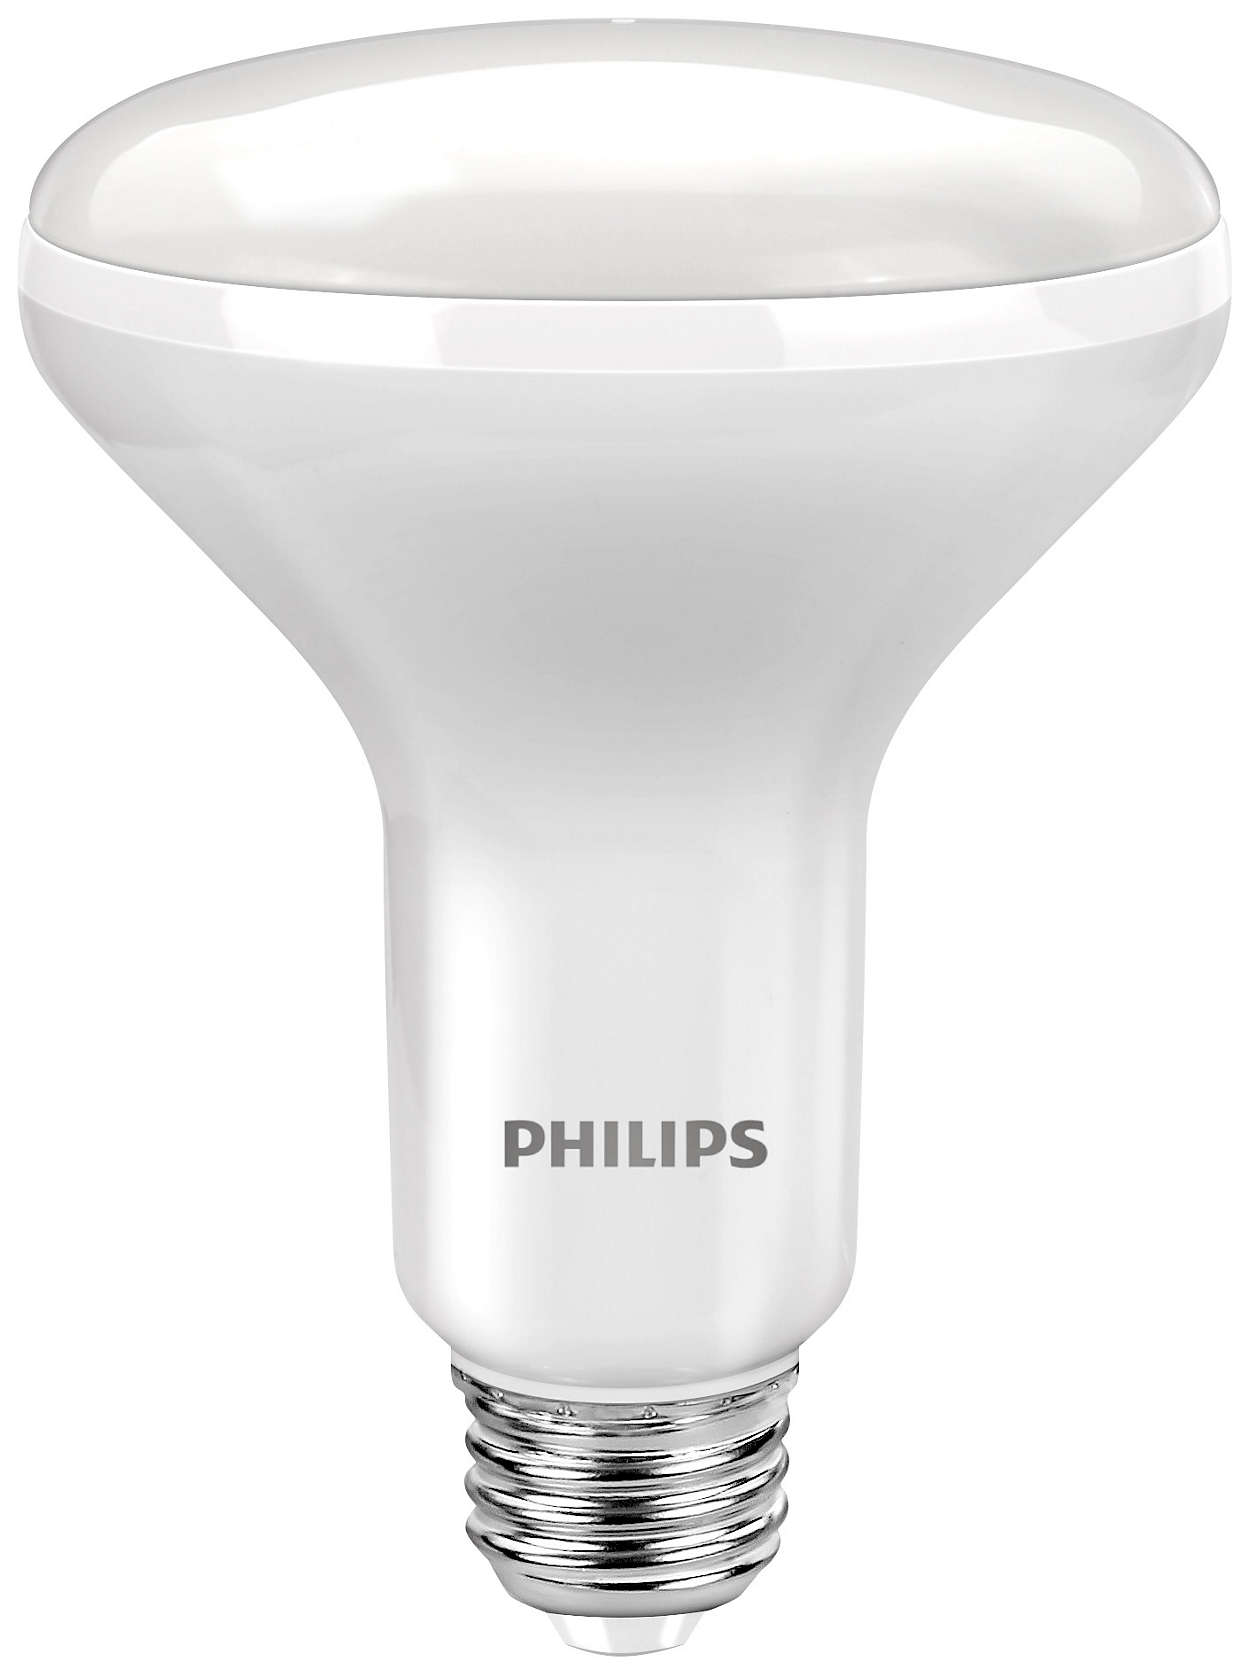 Making life comfortable with the benefits of LED